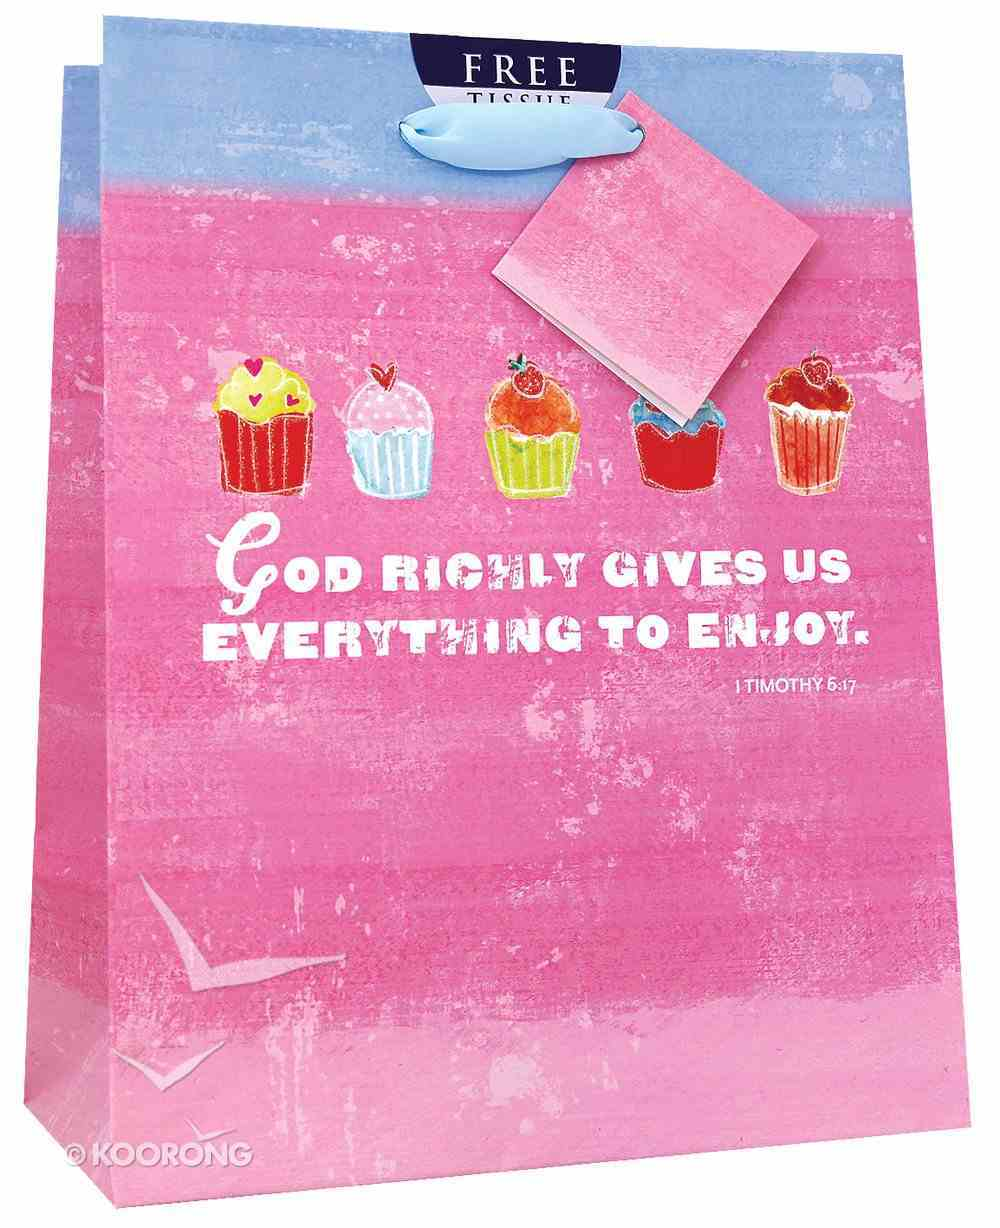 Gift Bag Medium: Sweet Gifts Cupcakes (Incl Tissue Paper & Gift Tag) Stationery